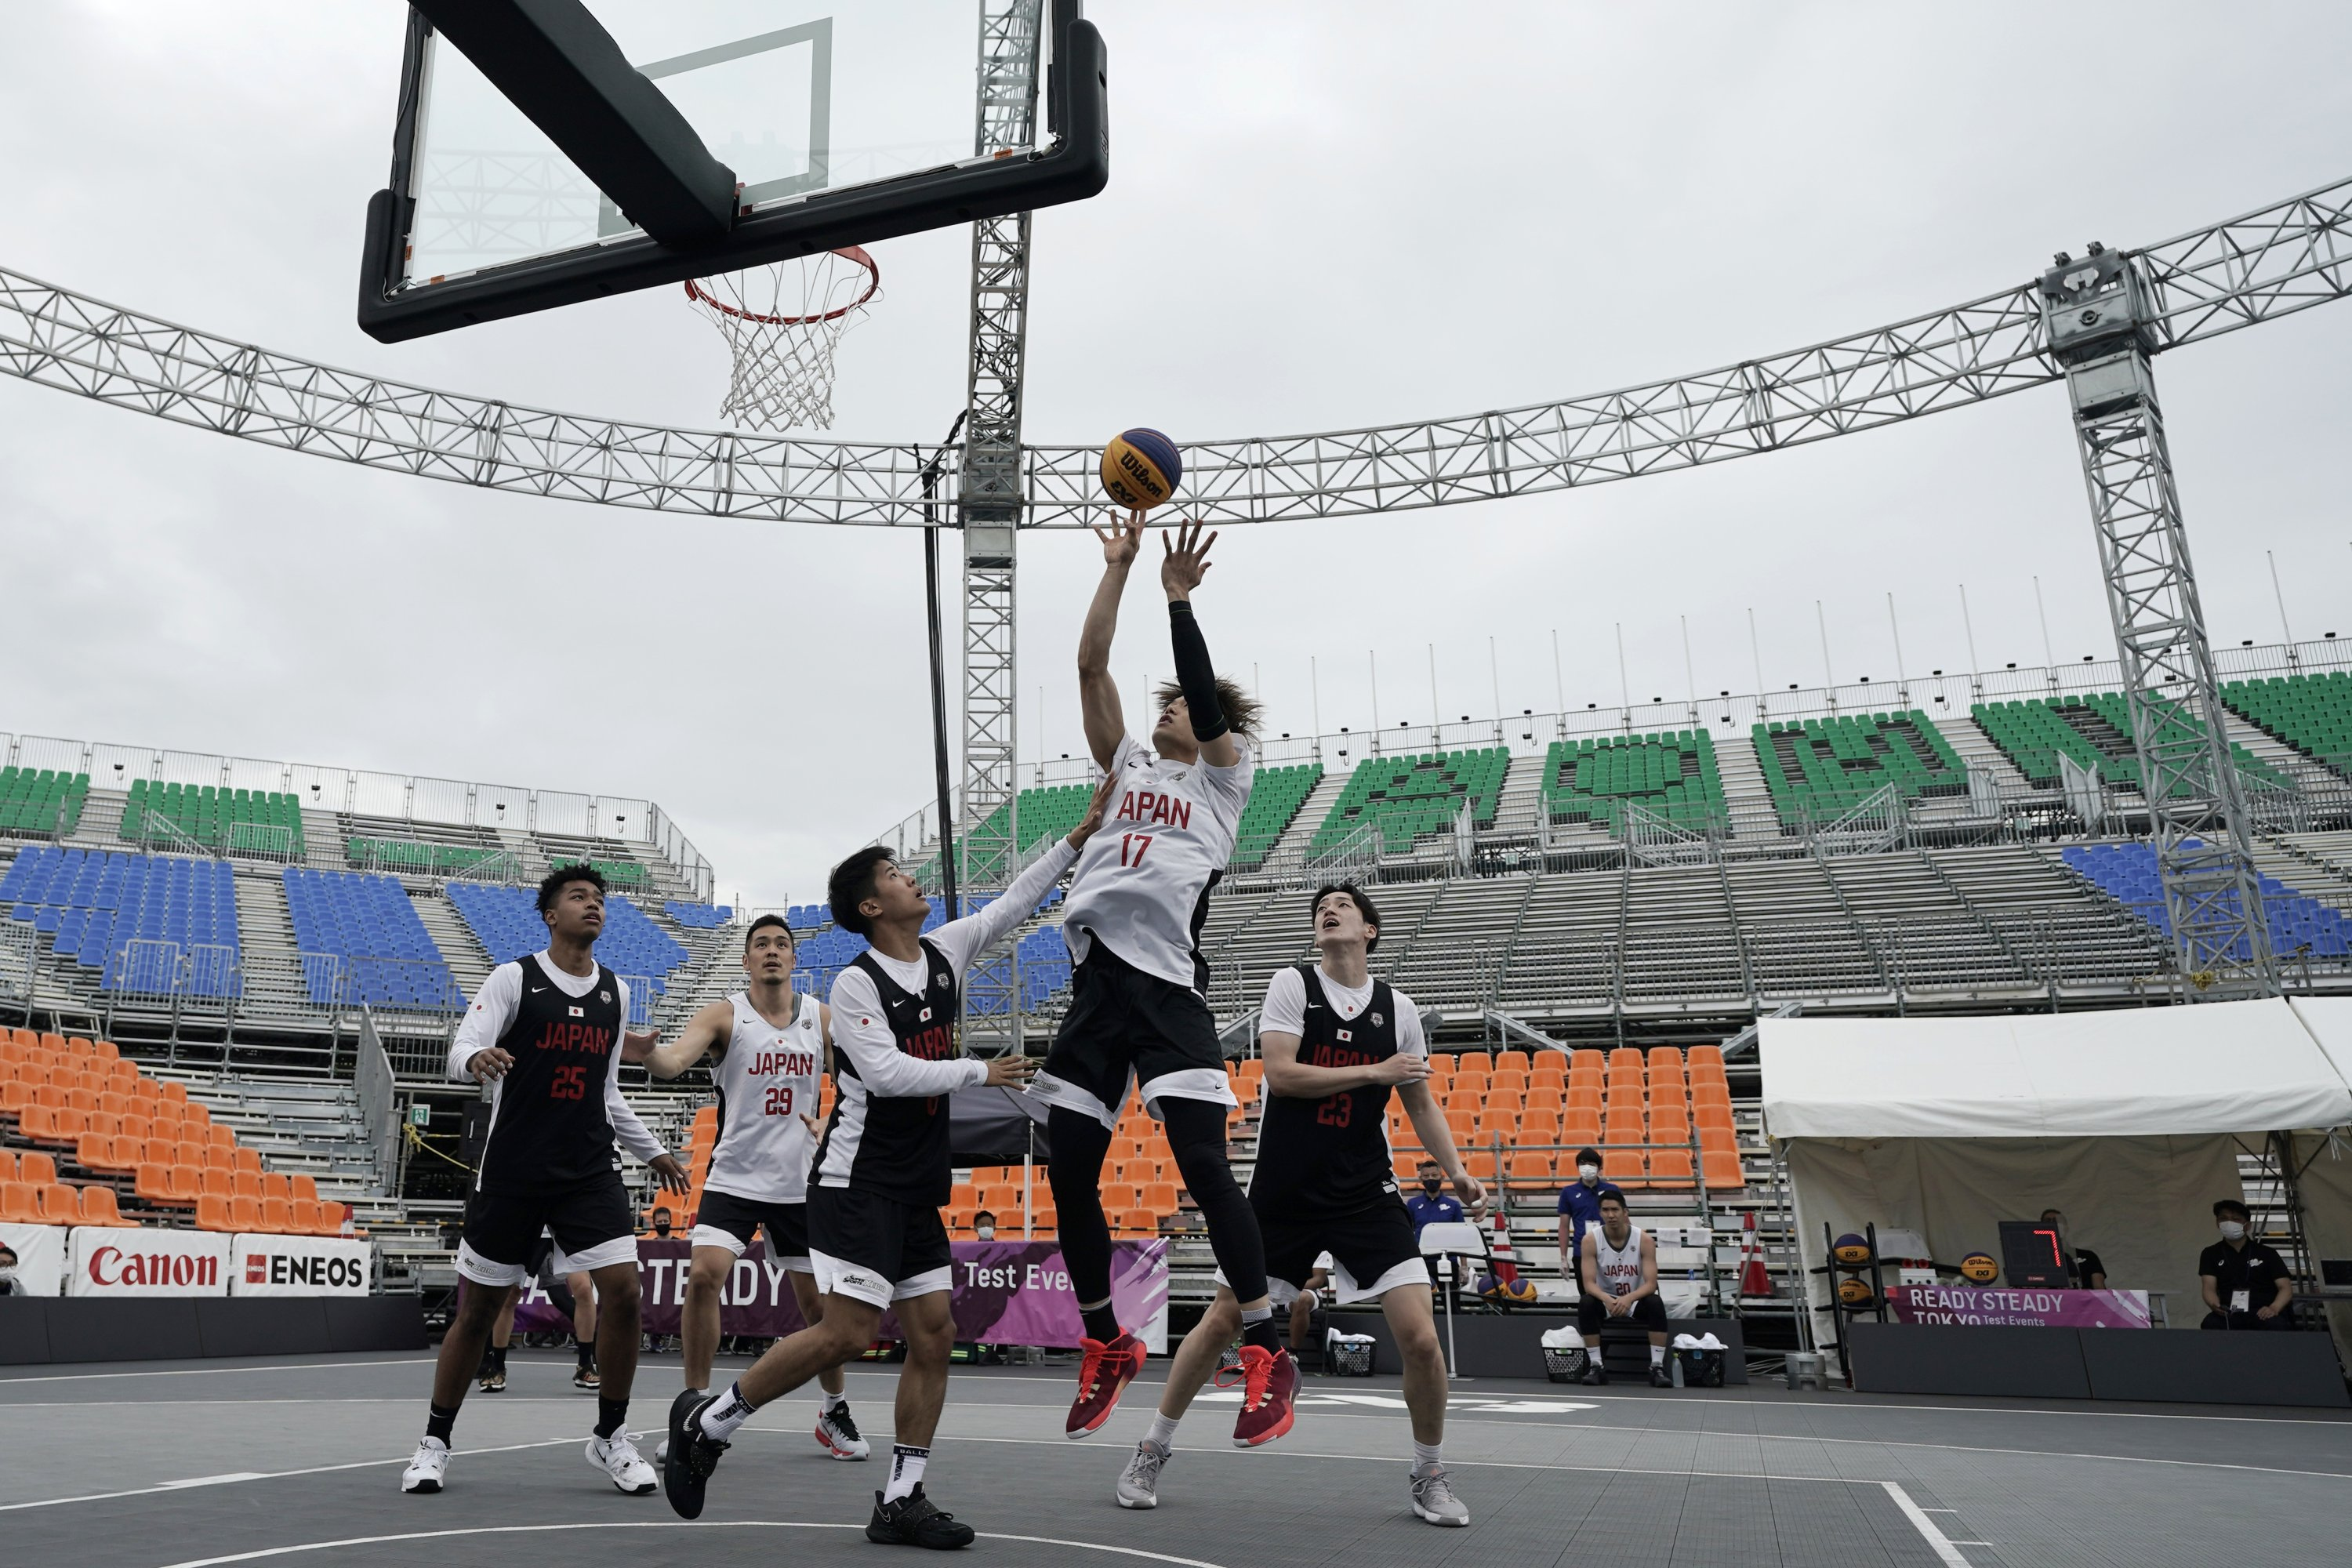 Athletes compete during the Tokyo 2020 Olympic Game men's basketball 3x3 test event at Aomi Urban Sports Park in Tokyo, Japan, May 16, 2021. (AP Photo)